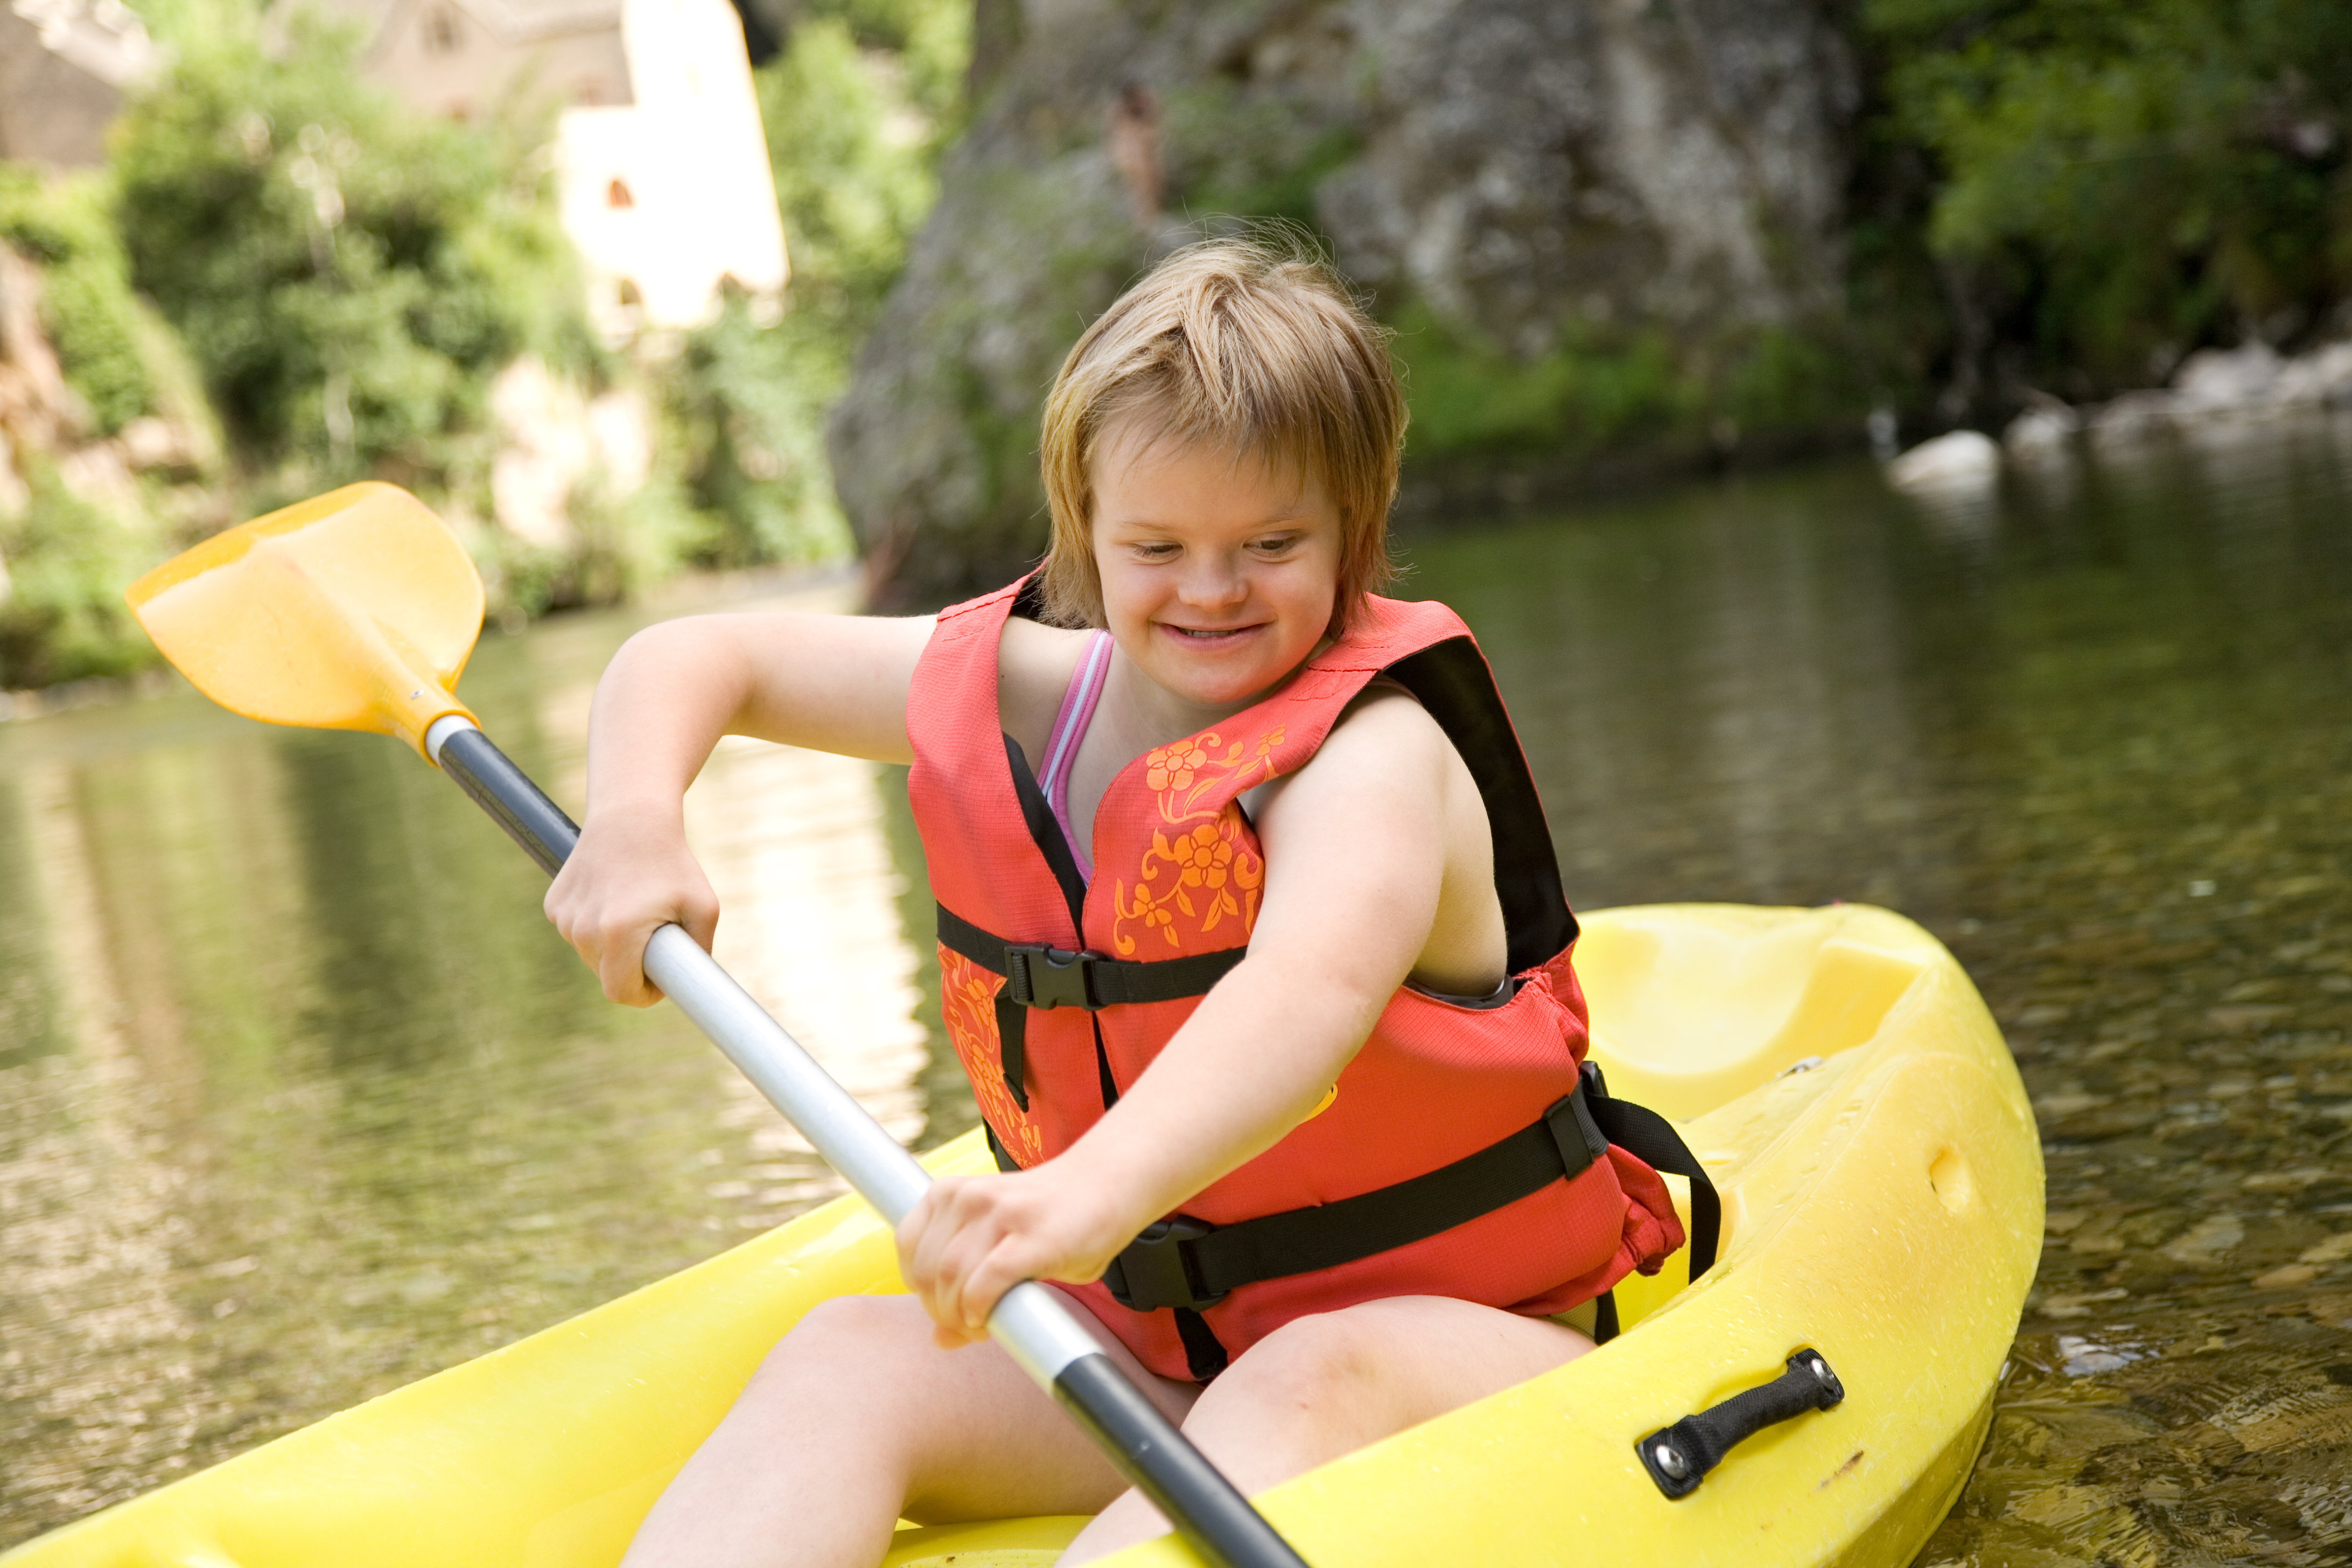 A teenaged girl with Down Syndrome kayaks while wearing a life vest